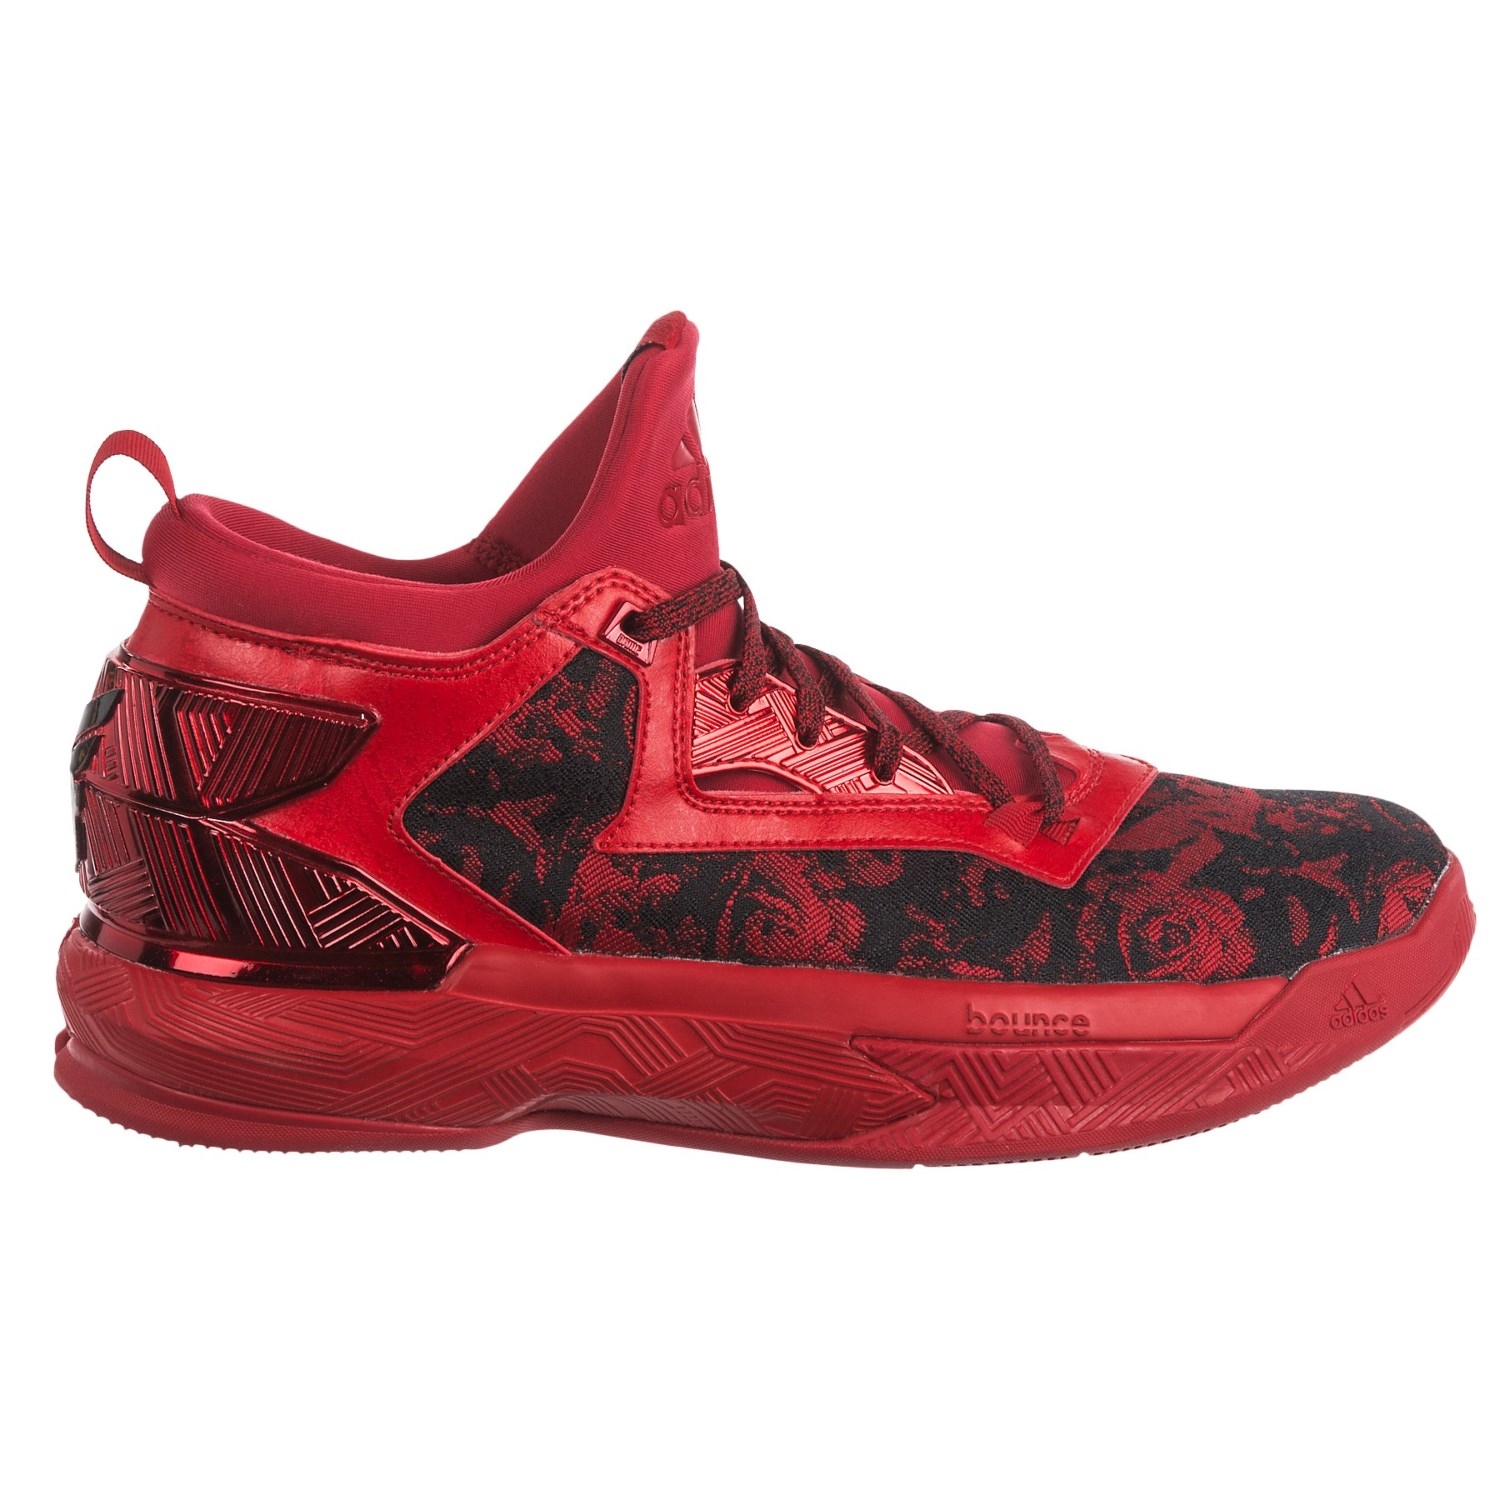 41ffefc71529 adidas Damian Lillard 2 Basketball Shoes (For Men) - Save 20%